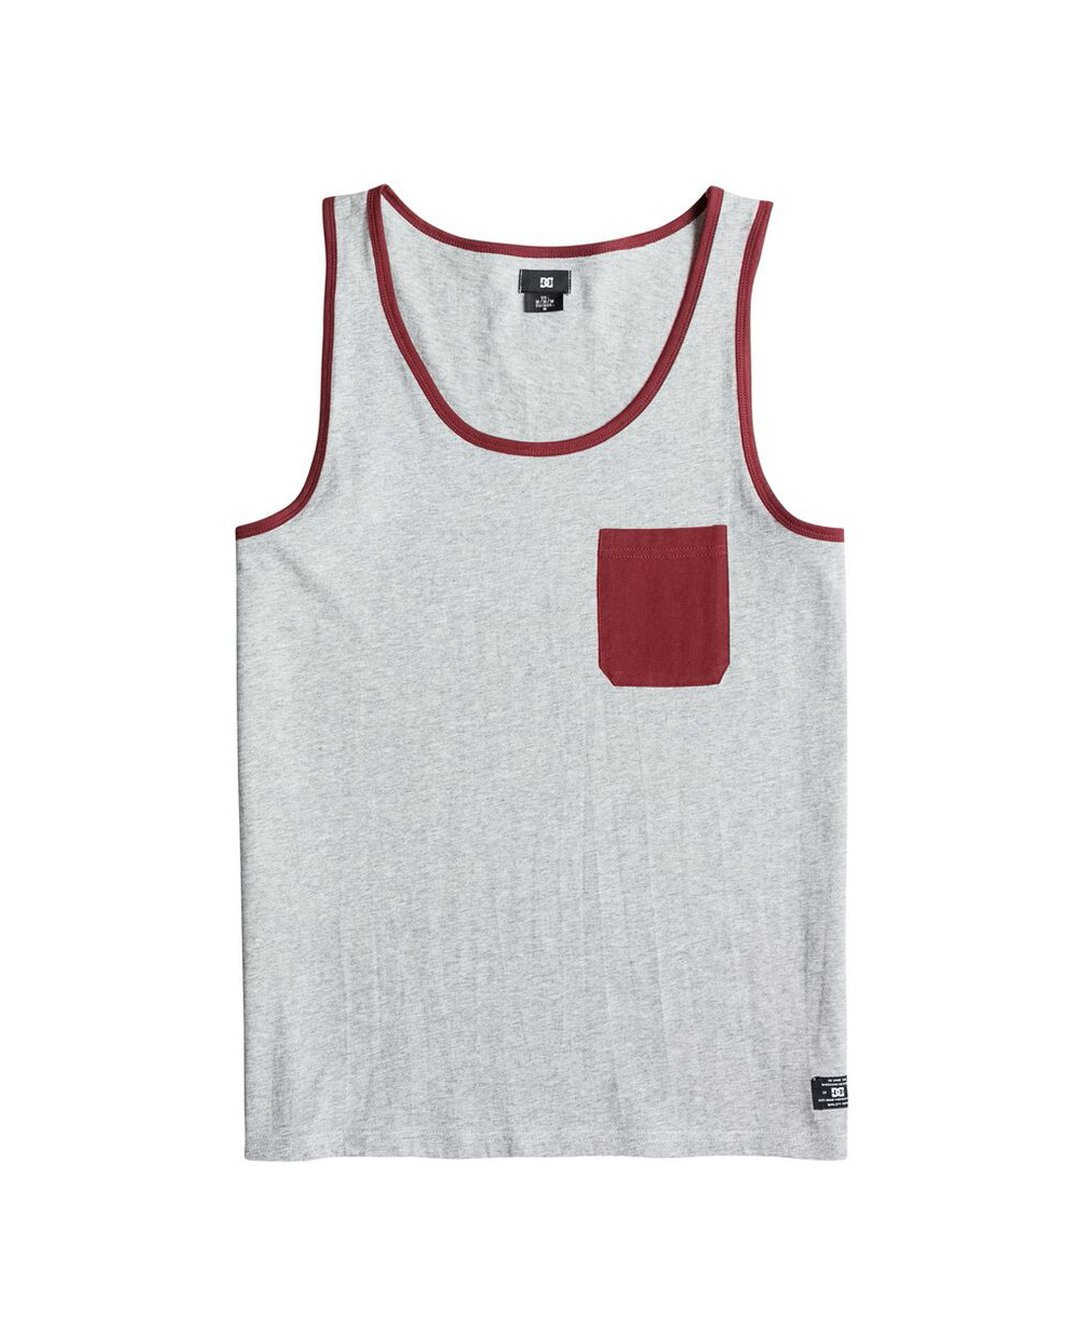 DC SHOES TANK CONTRA - LM BOARD STORE